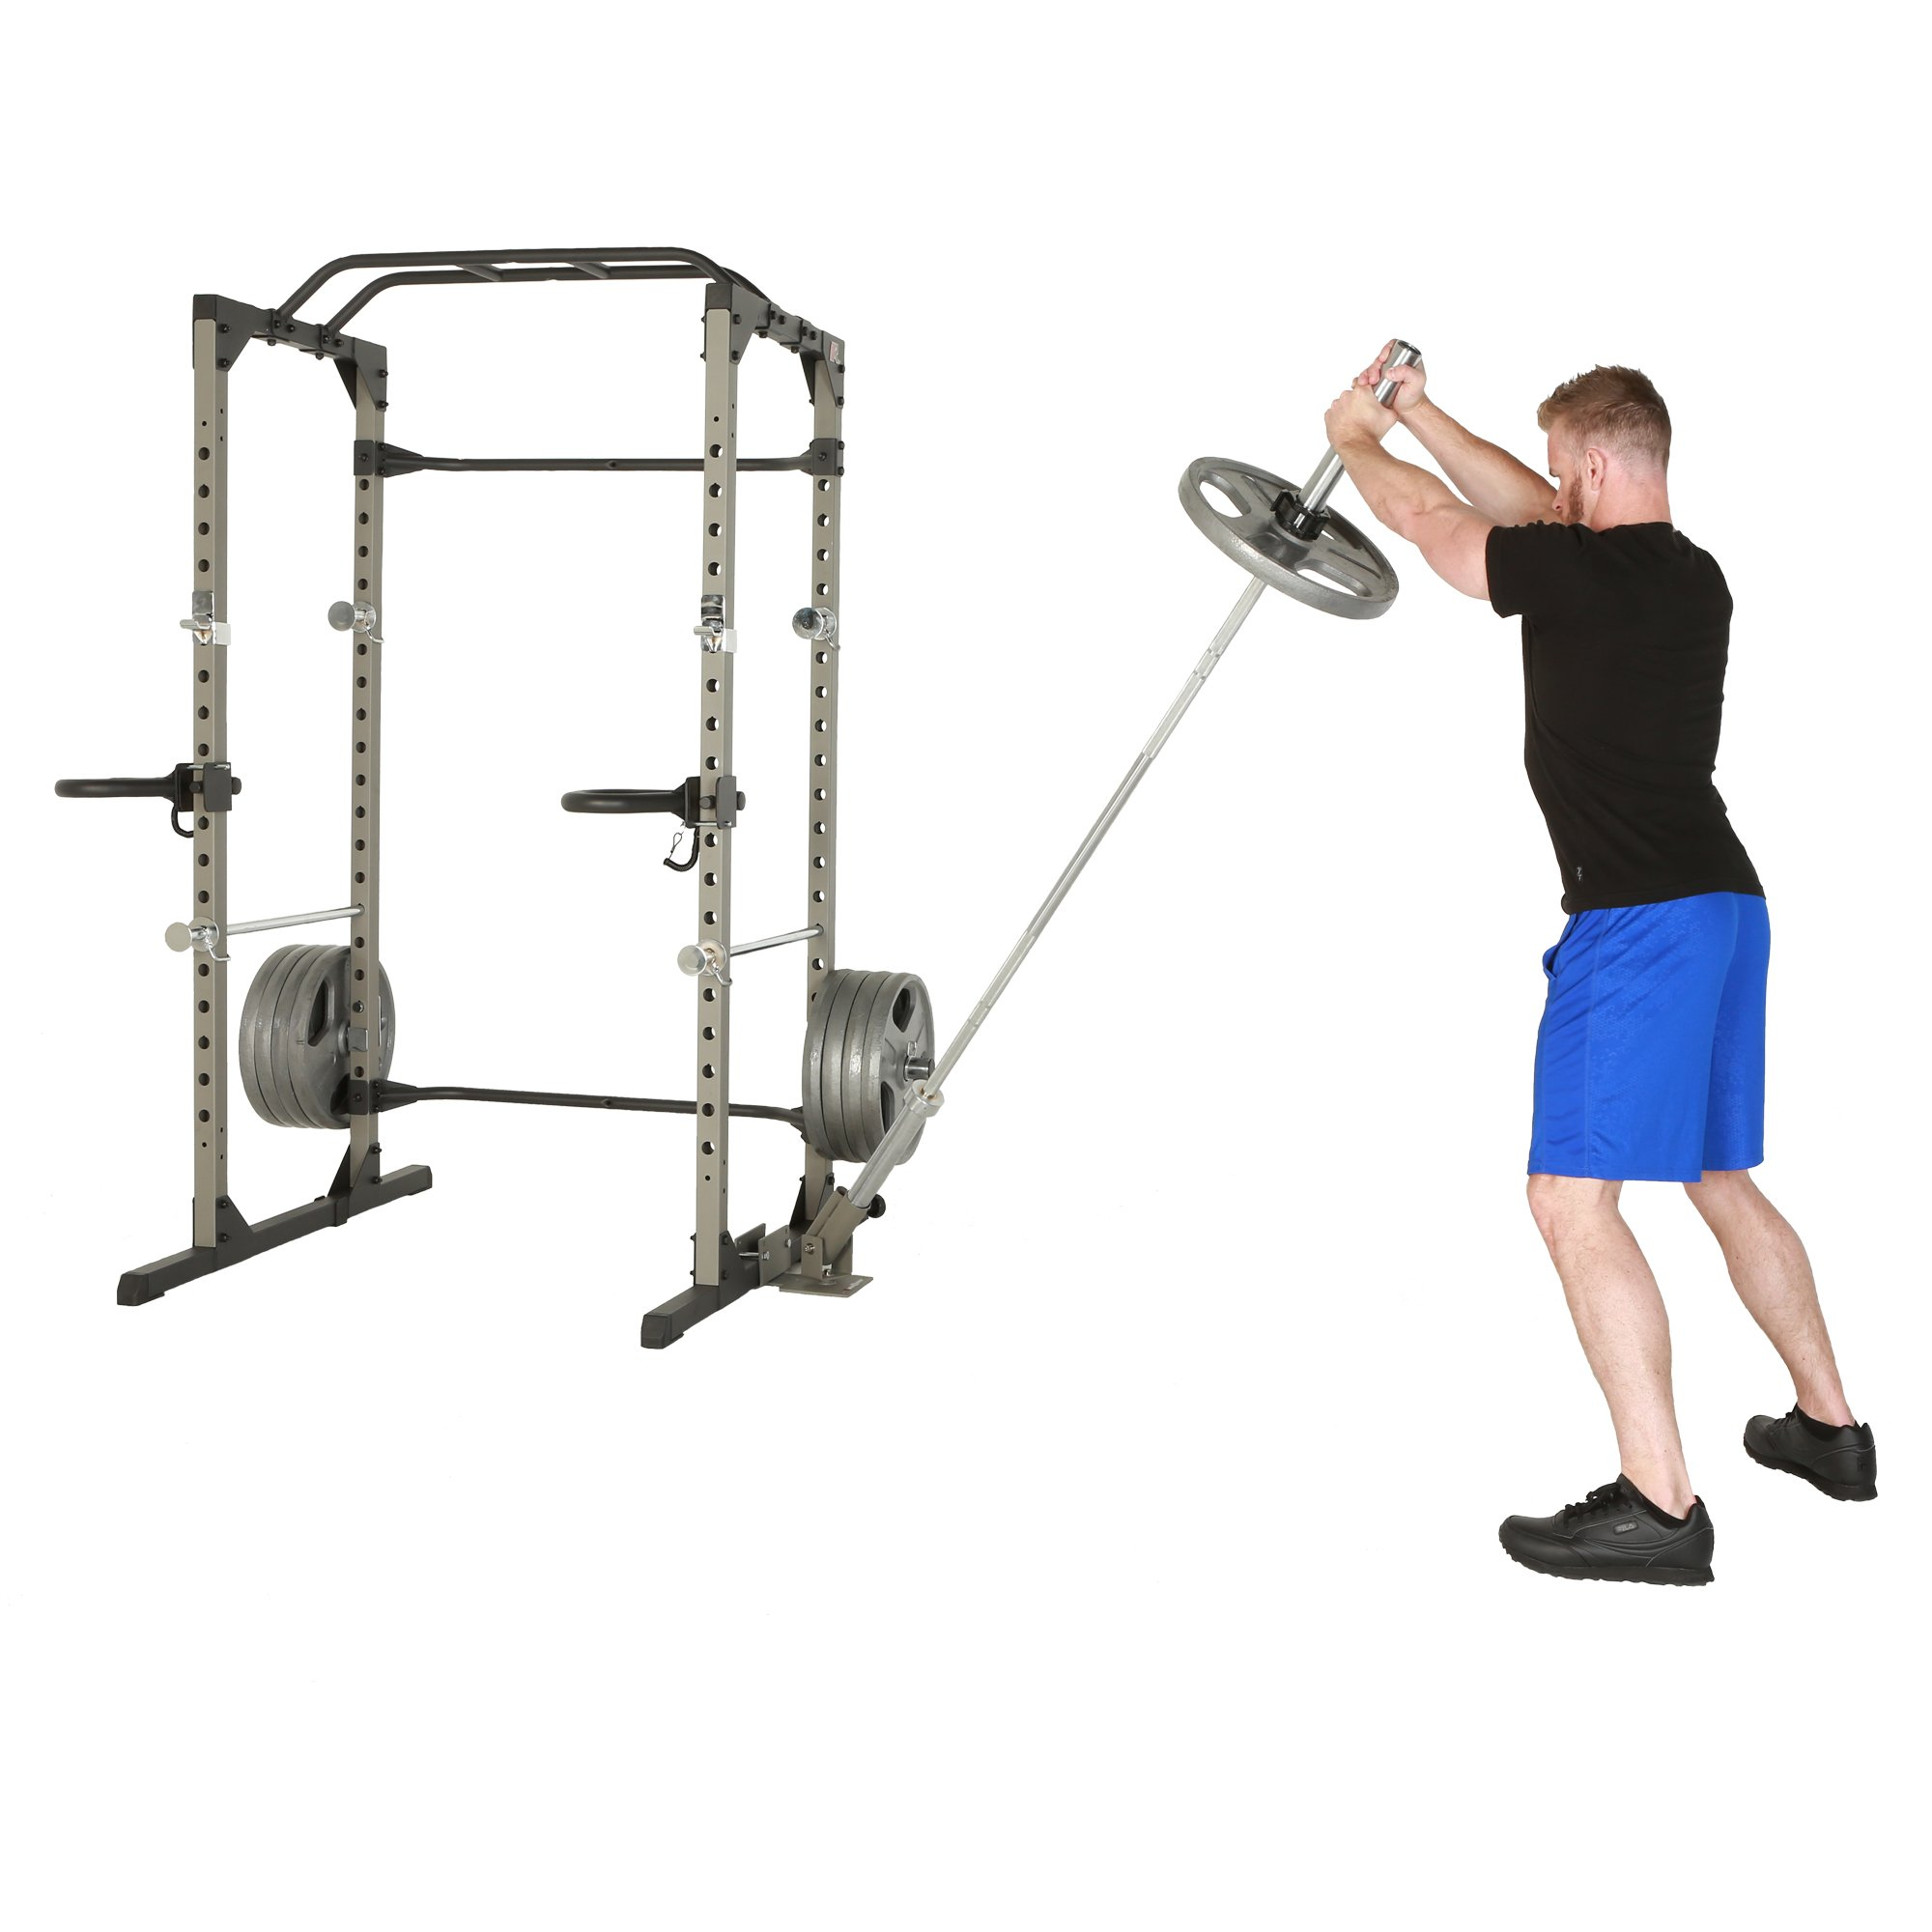 Fitness Reality Attachment Set for 2''x2'' Steel Tubing Power Cages by Fitness Reality (Image #13)